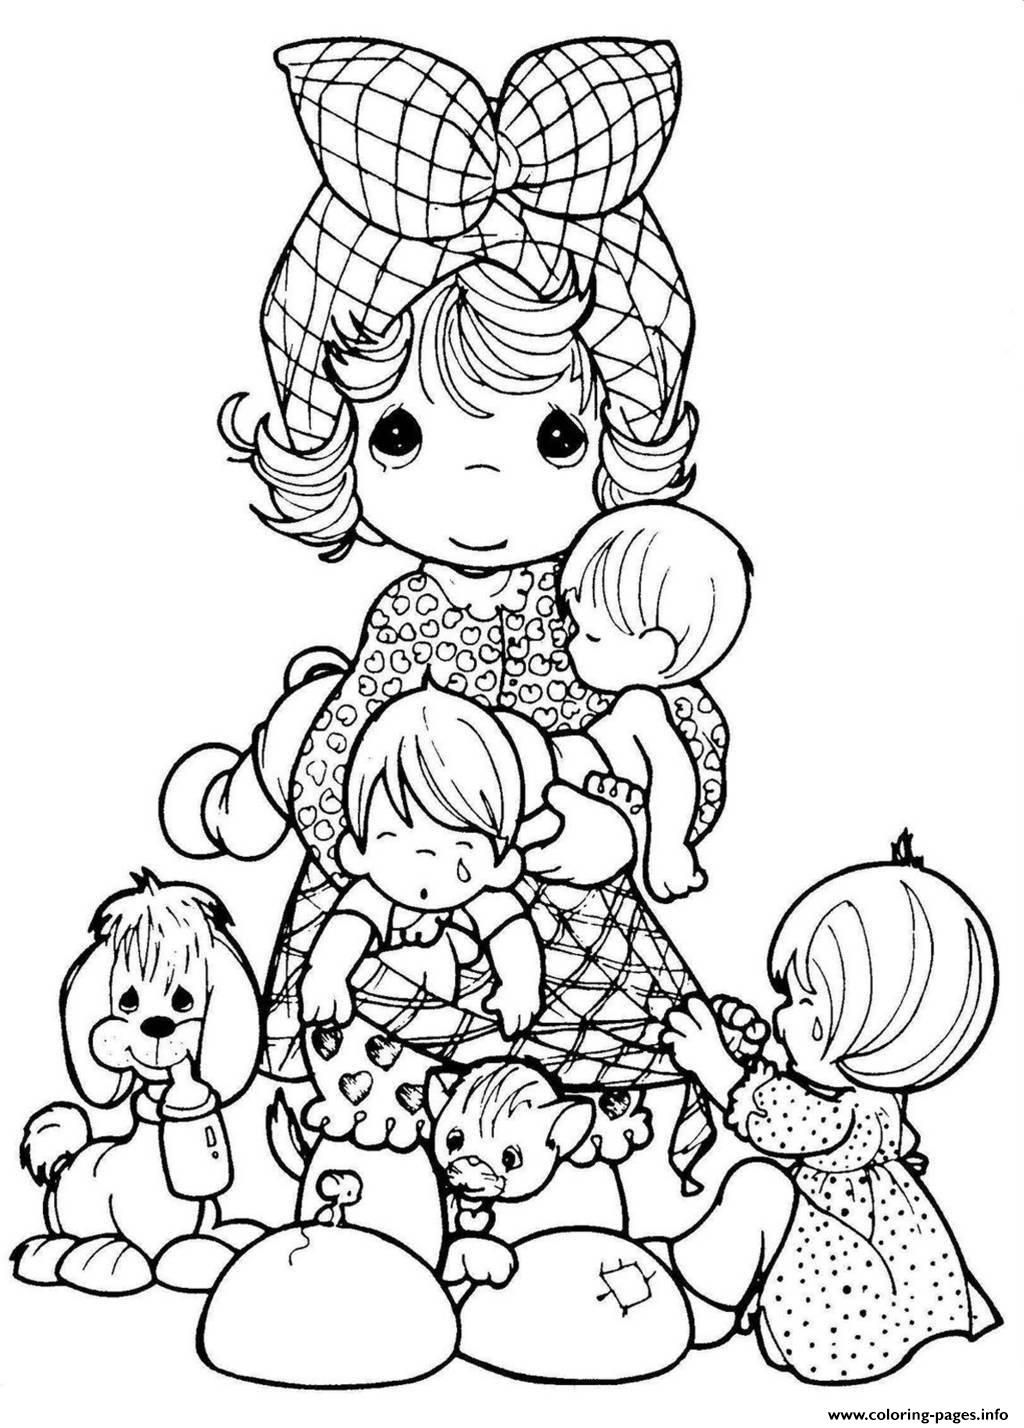 Print adult precious moments coloring pages color for Coloring pages precious moments print